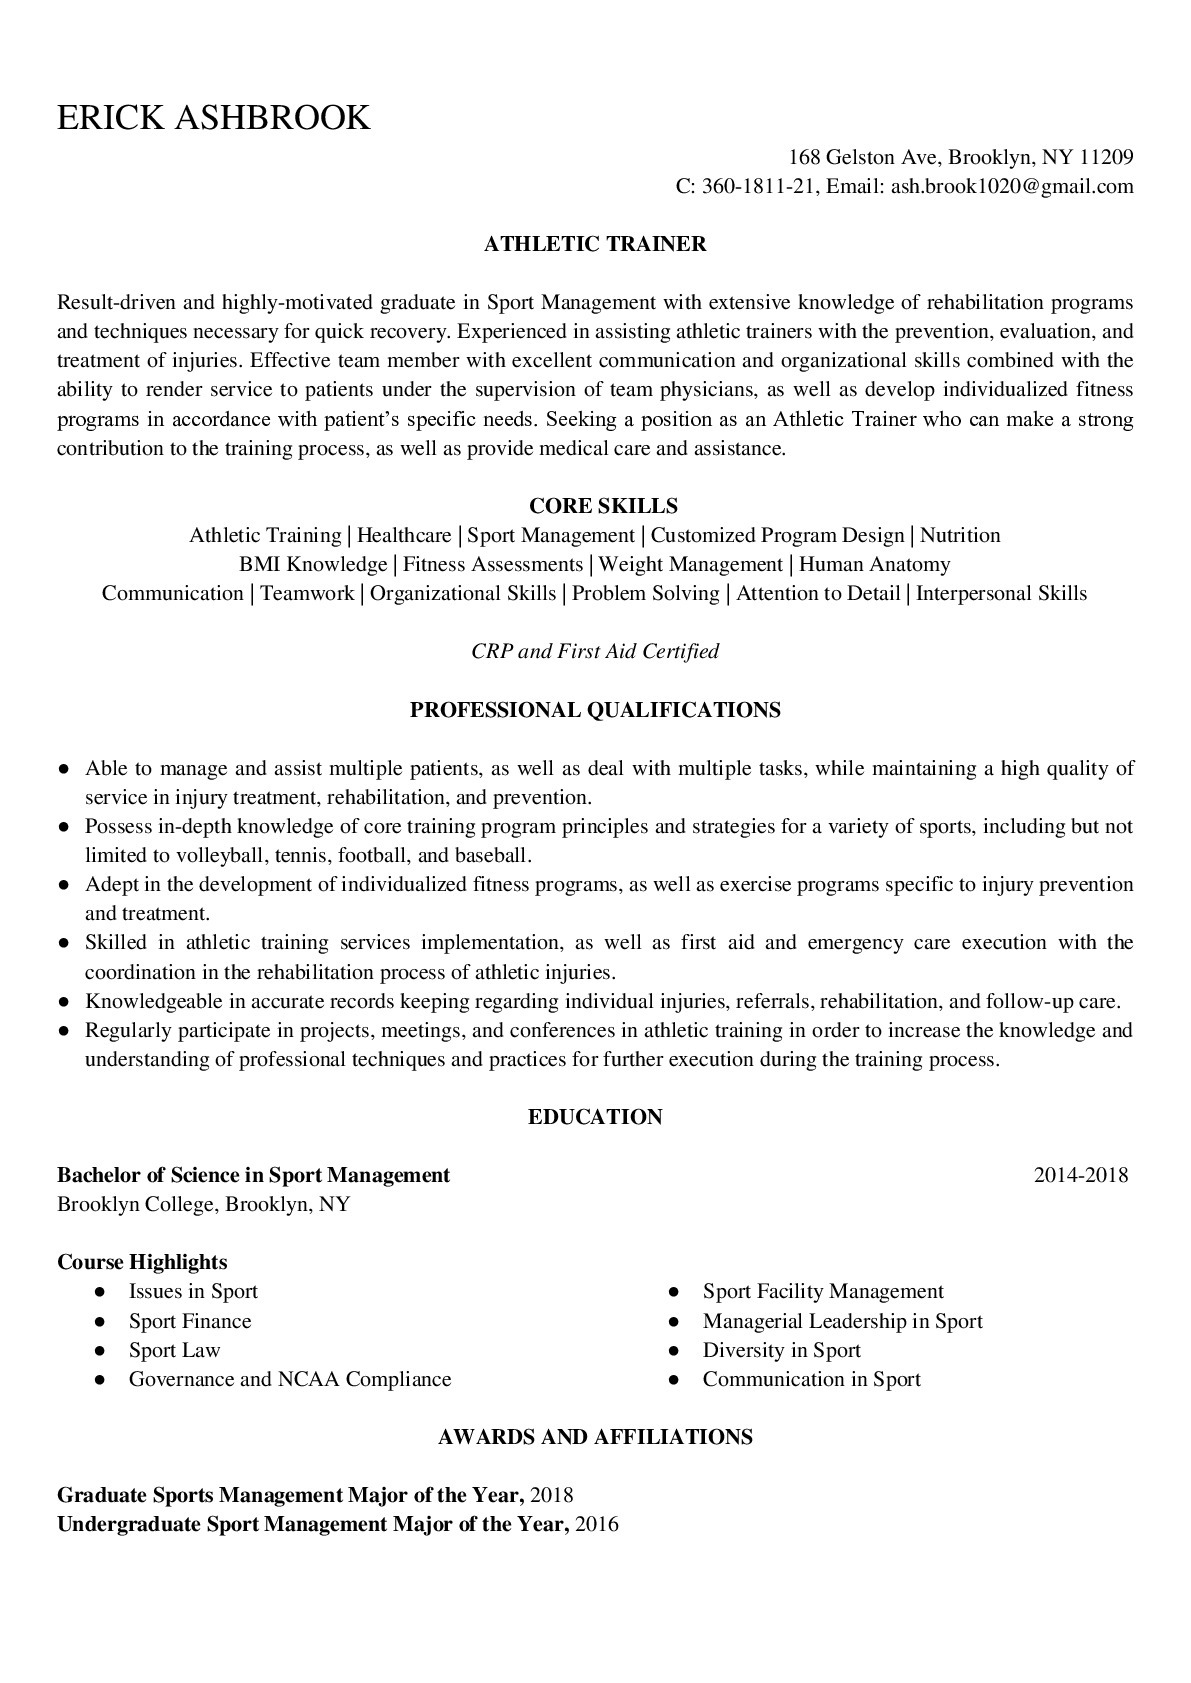 Resume Example for Athletic Trainer